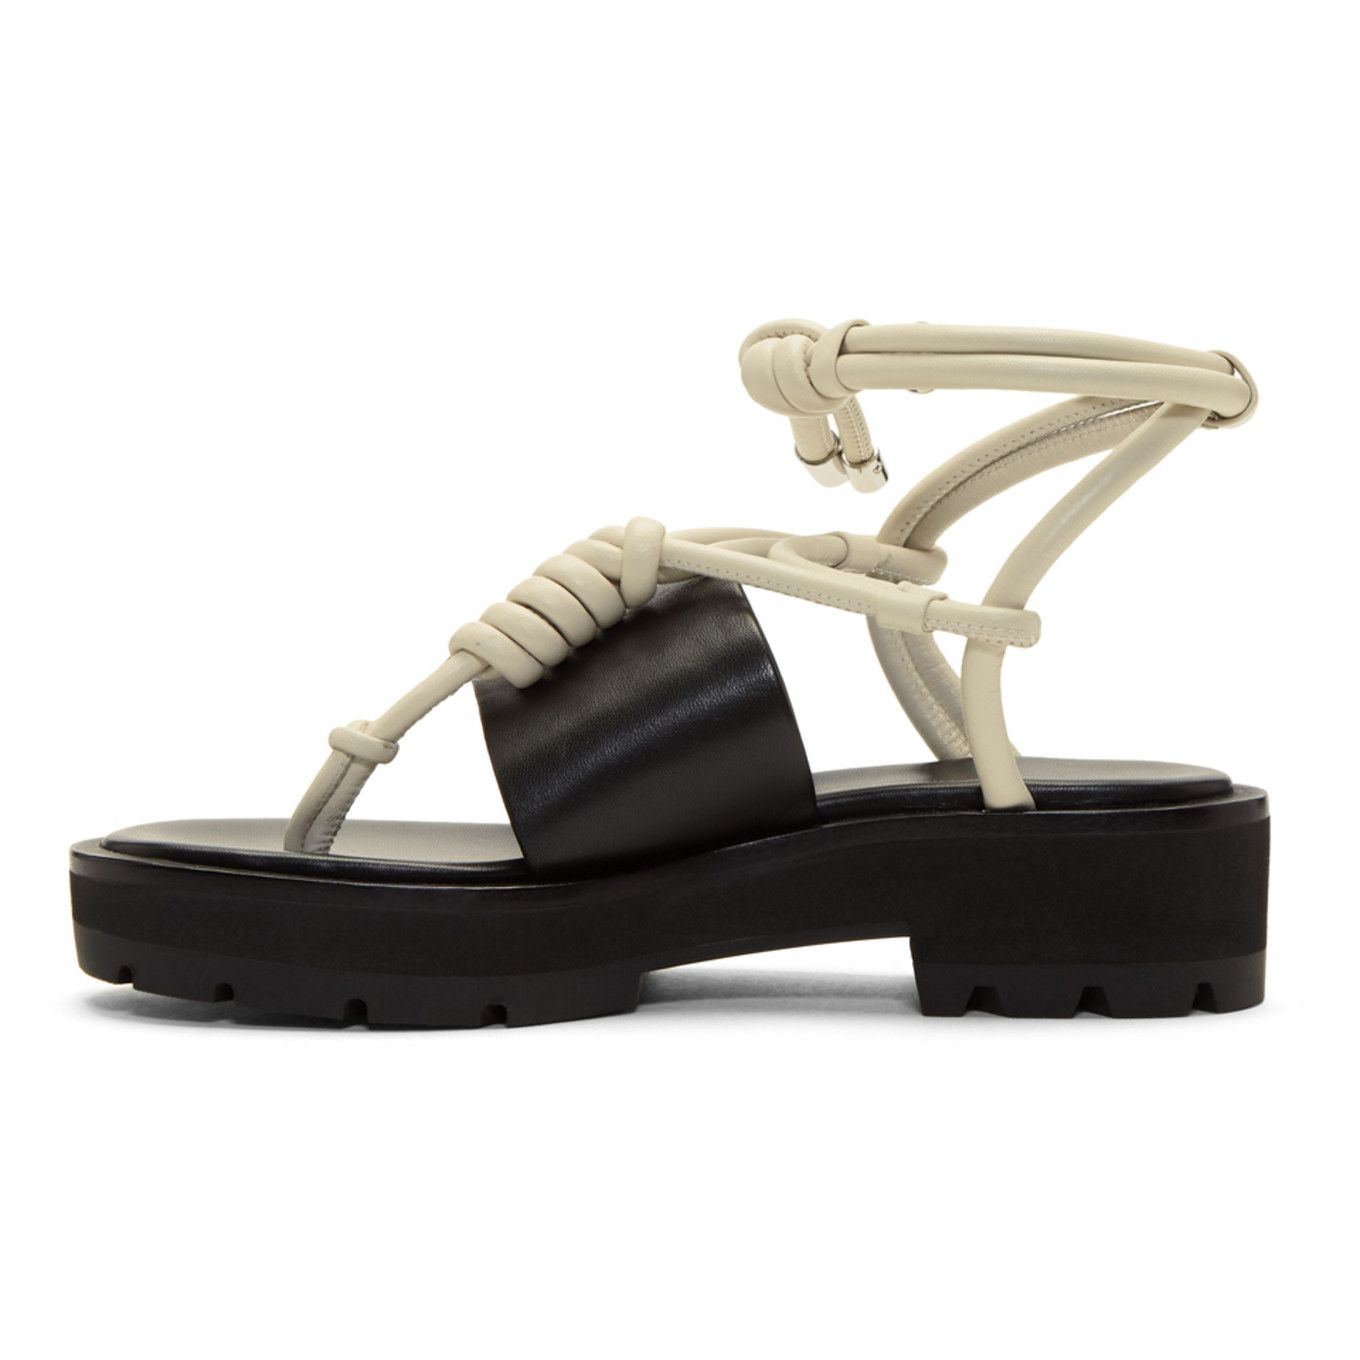 3.1 Phillip Lim & Ivory Strappy Lug Sole Sandals